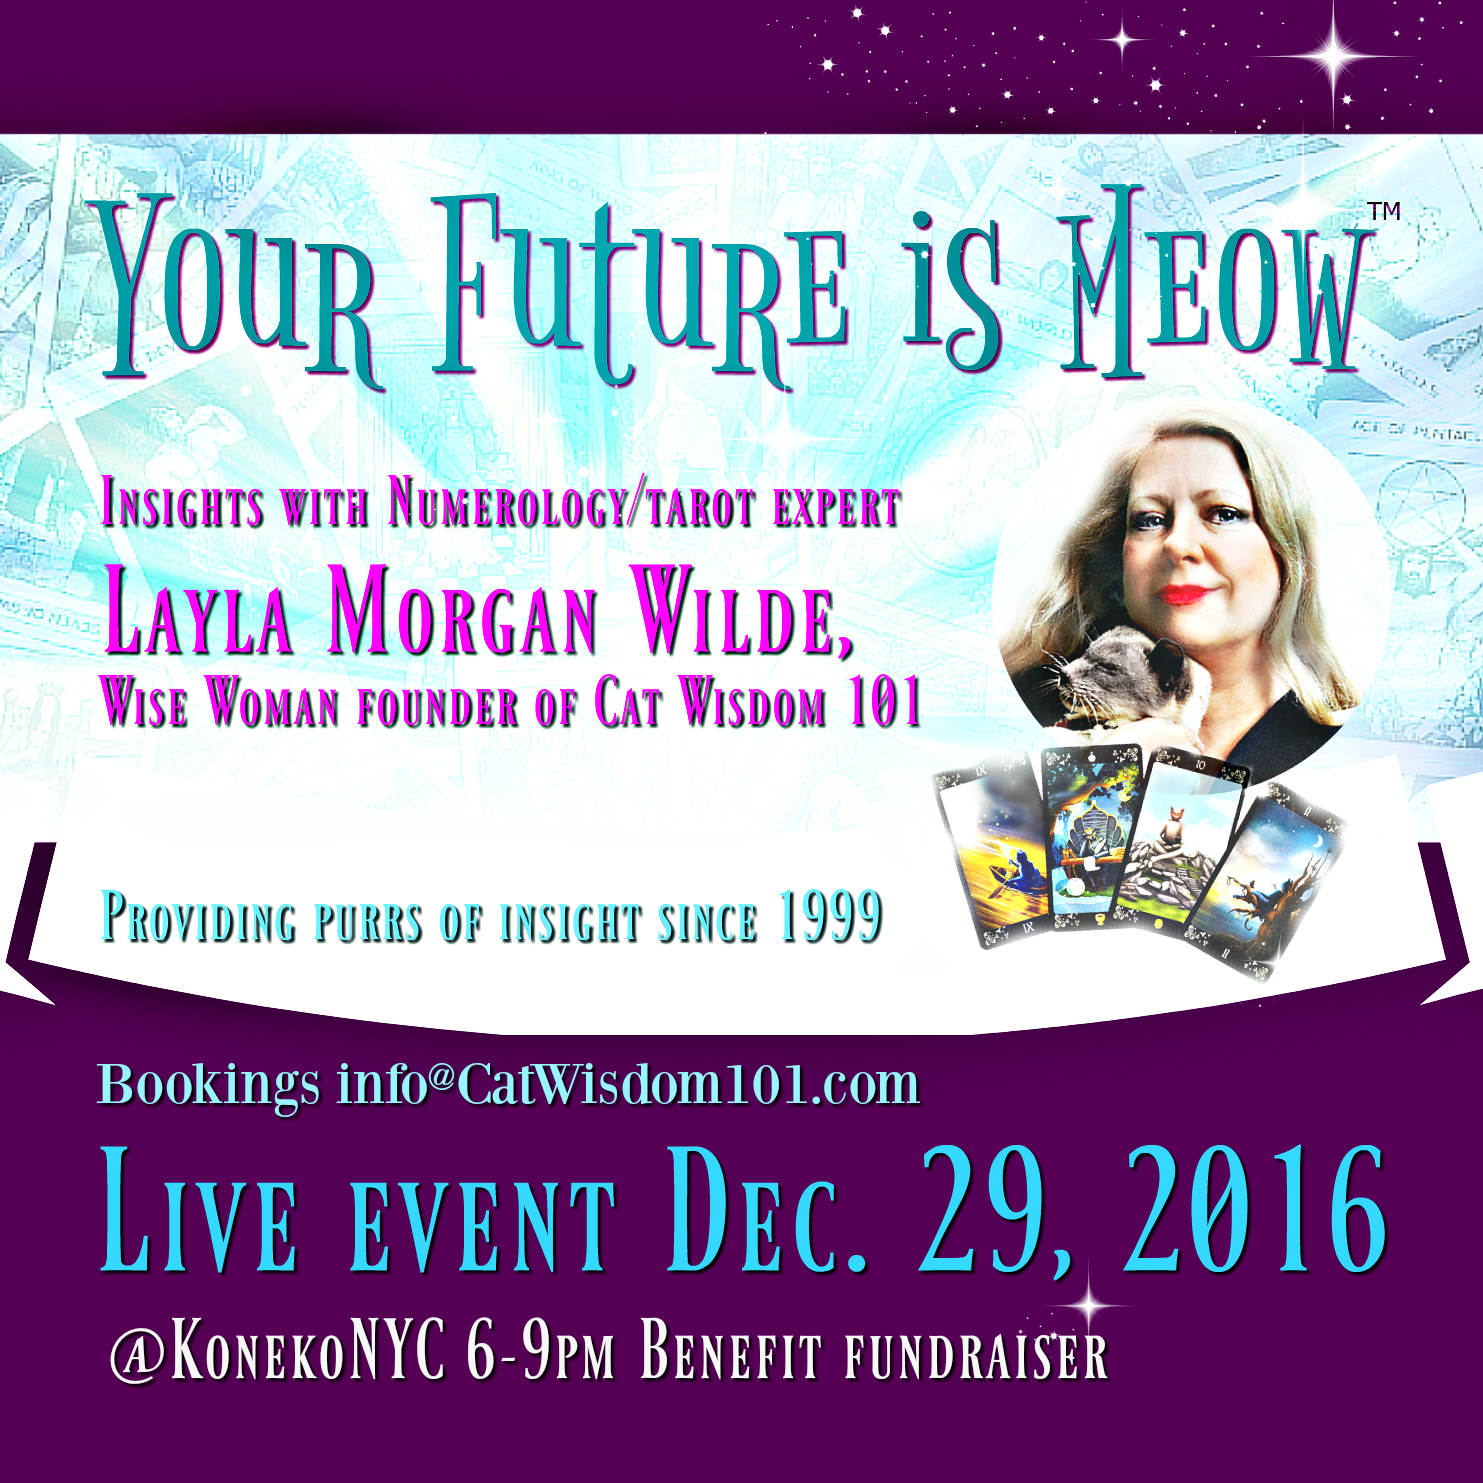 The Future Is Meow With Layla Morgan Wilde at KonekoNYC